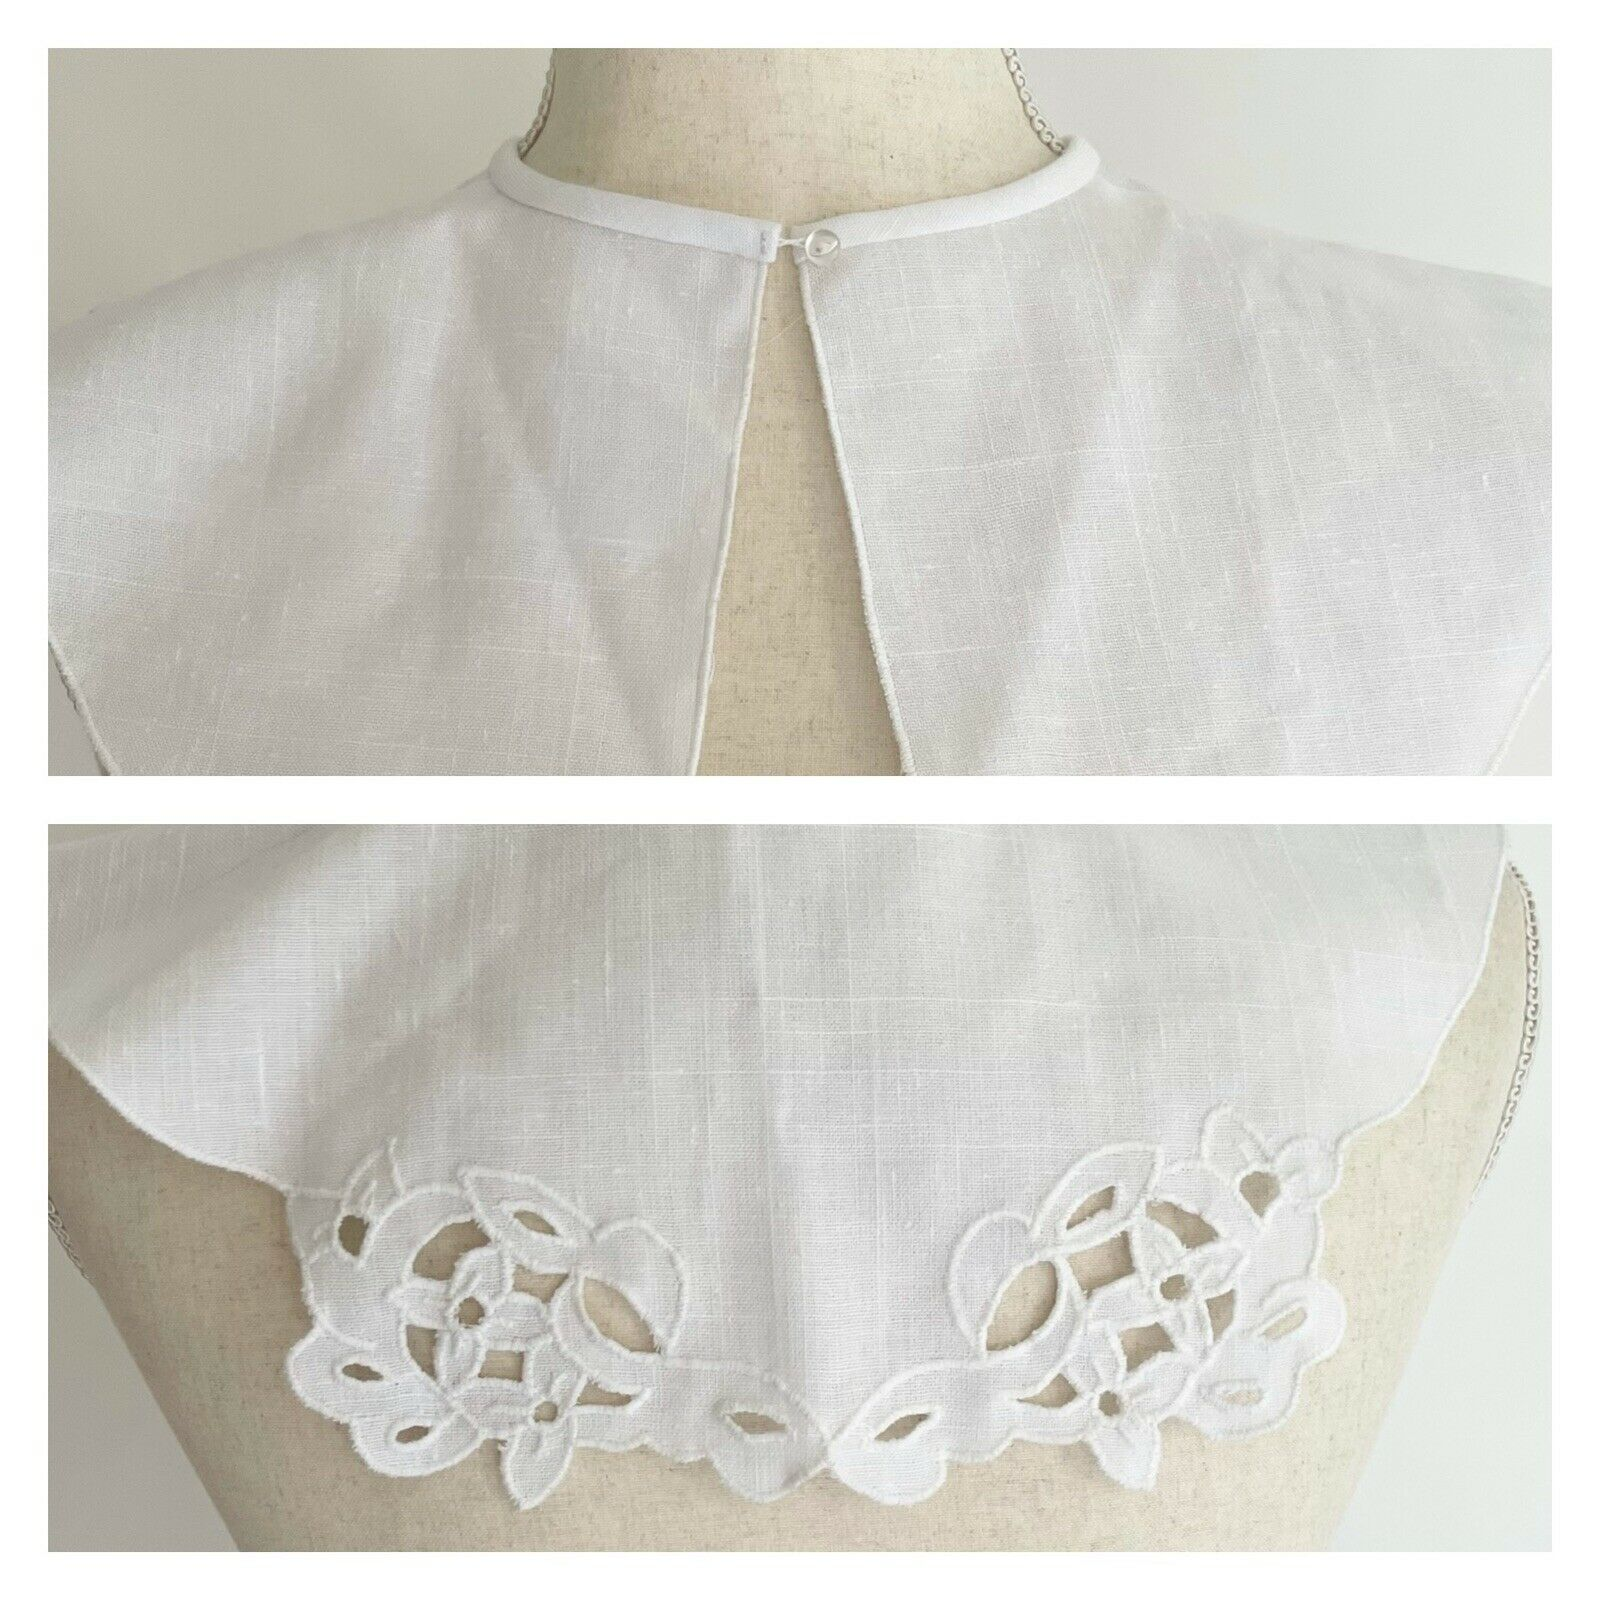 Antique Vintage White Cotton Collar Broderie Anglaise Eyelet Girl Small Women